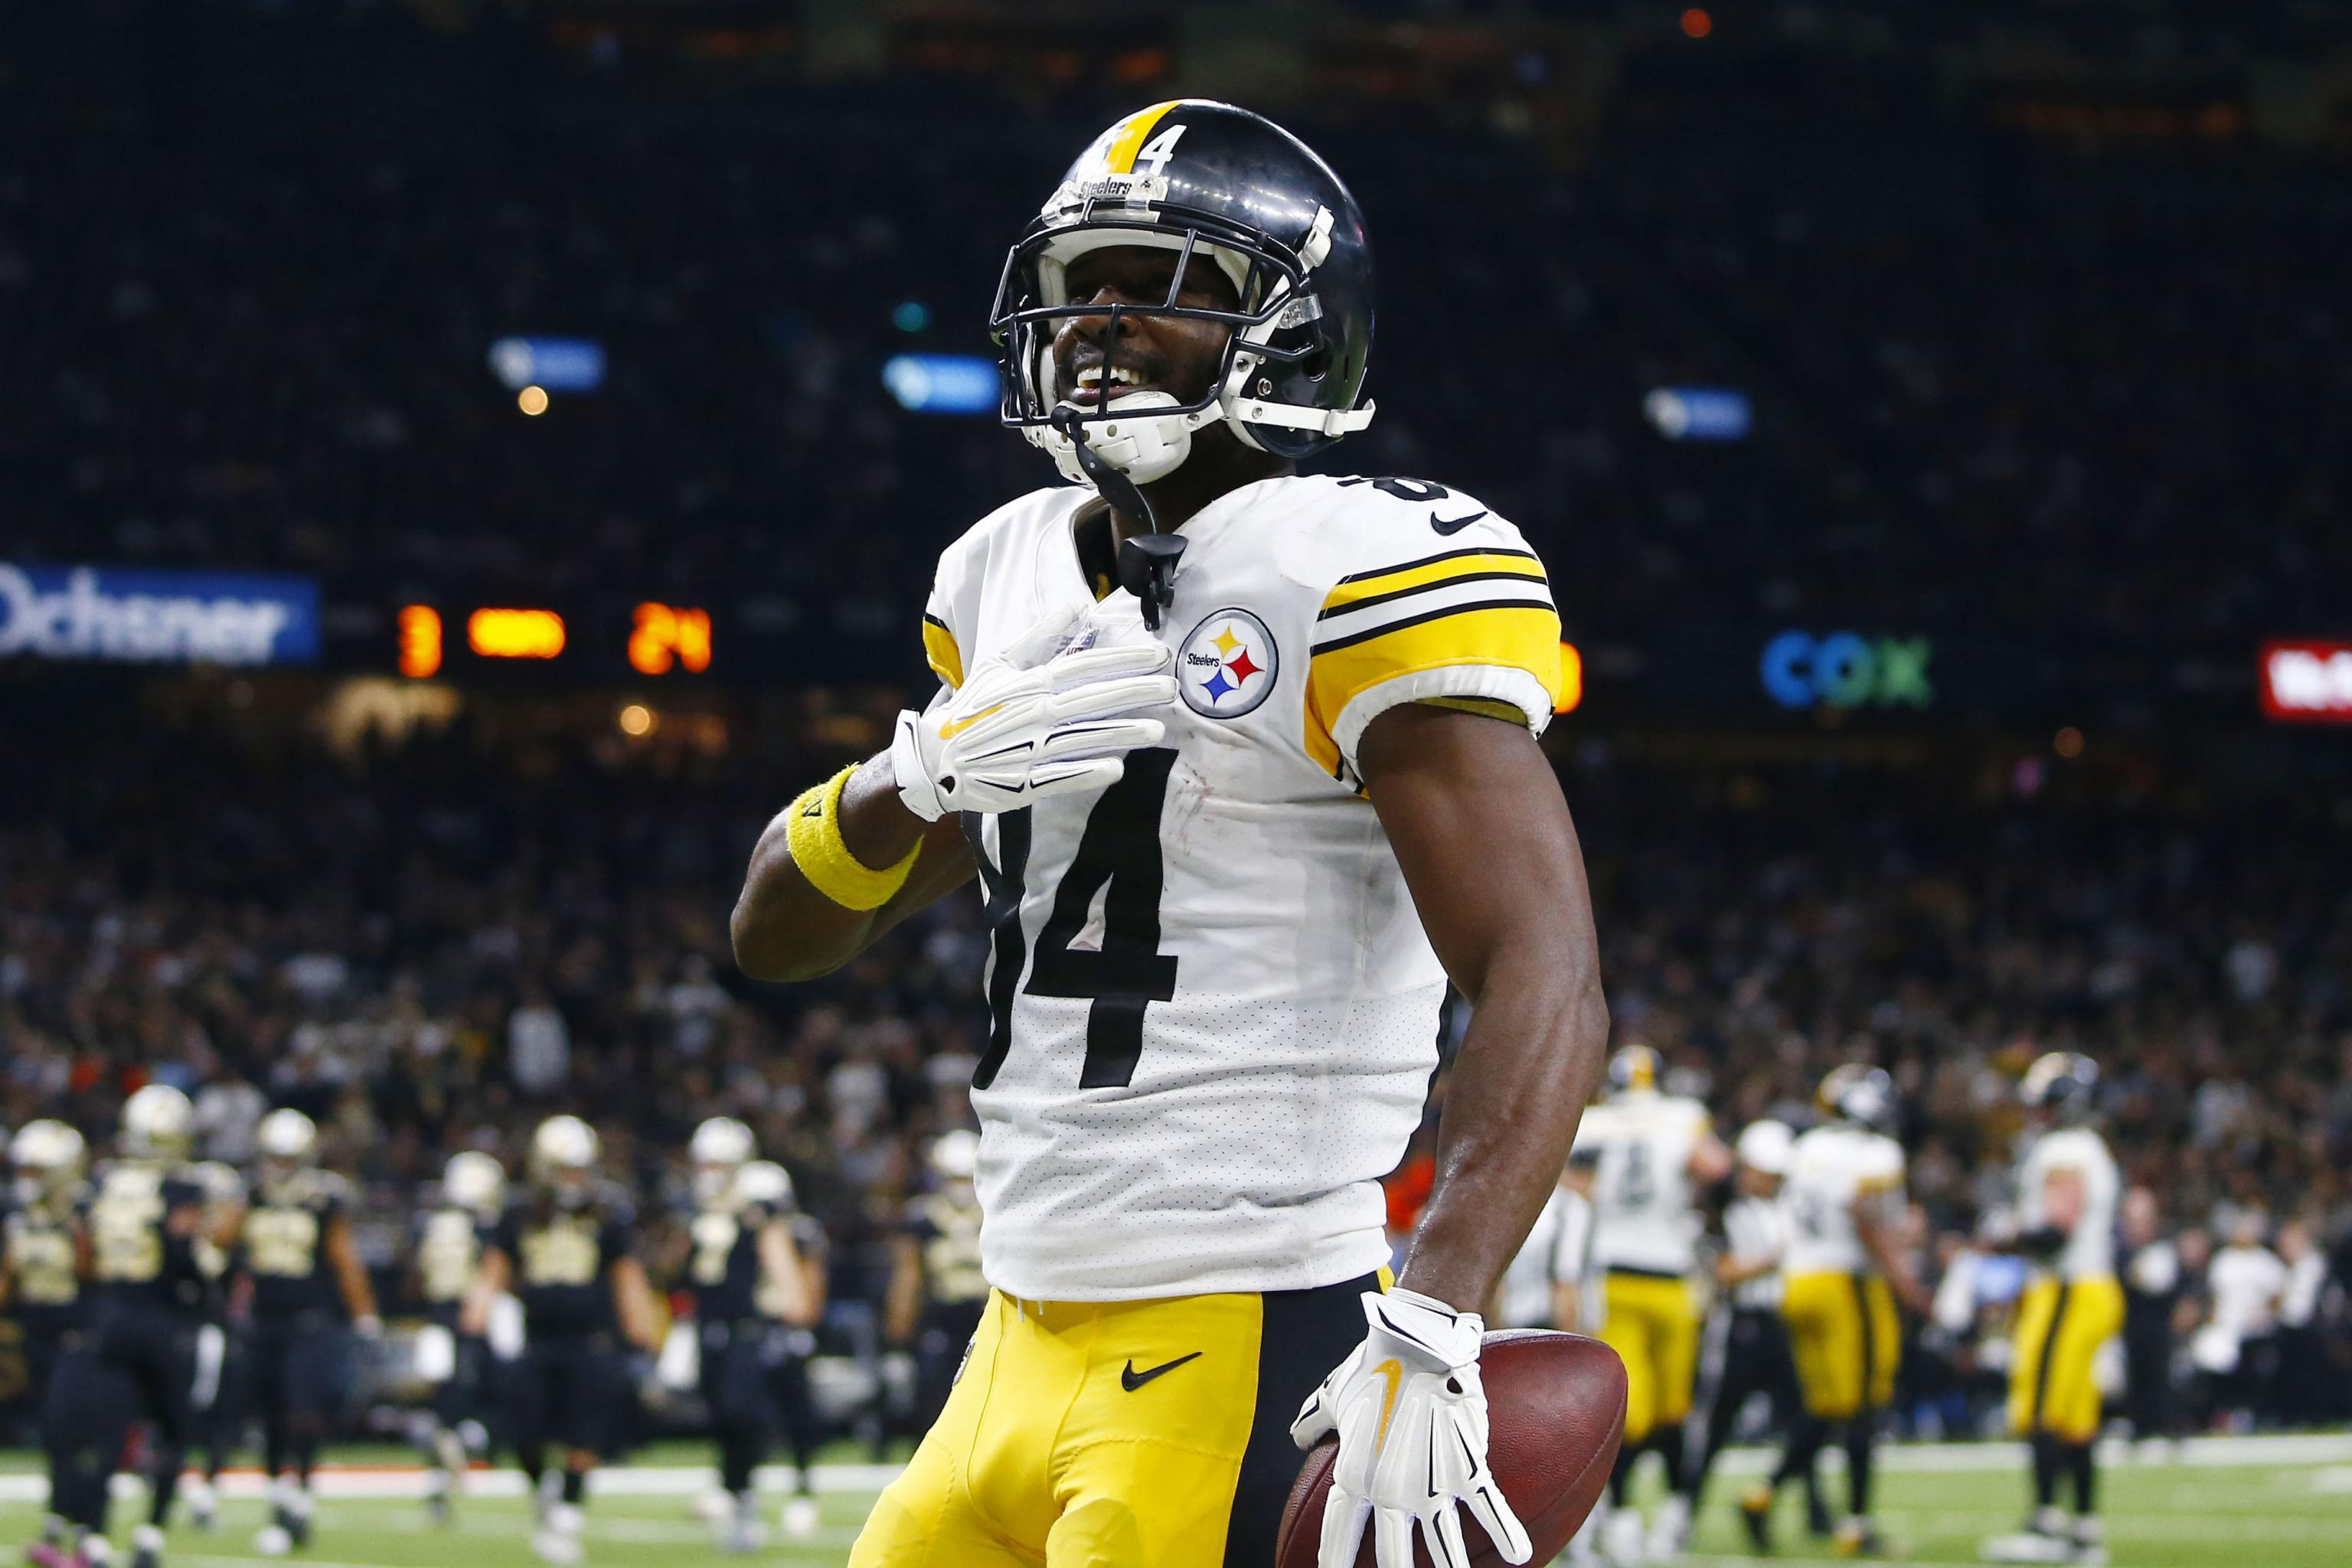 separation shoes 40a87 4ed80 Antonio Brown Posts Photo of 'Browns' Jerseys Ahead of CLE's ...